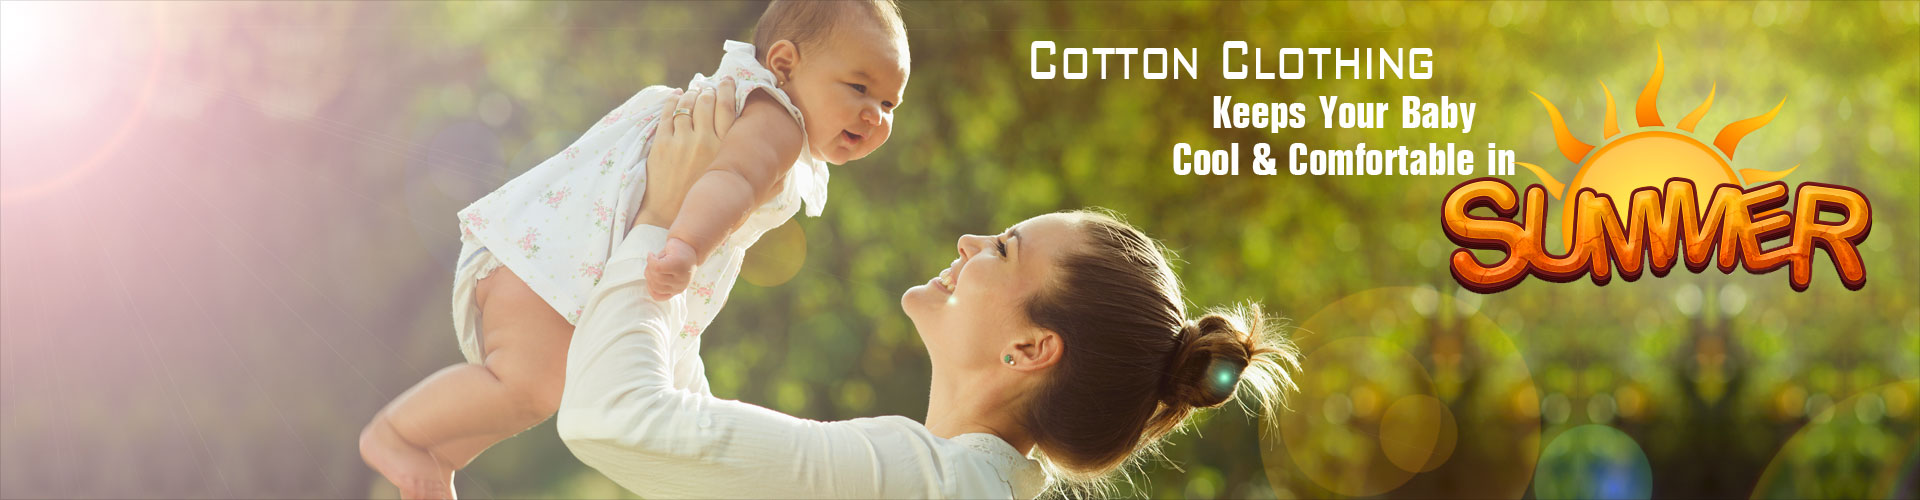 Cotton Clothing Keeps Your Baby Cool and Comfortable in Summer